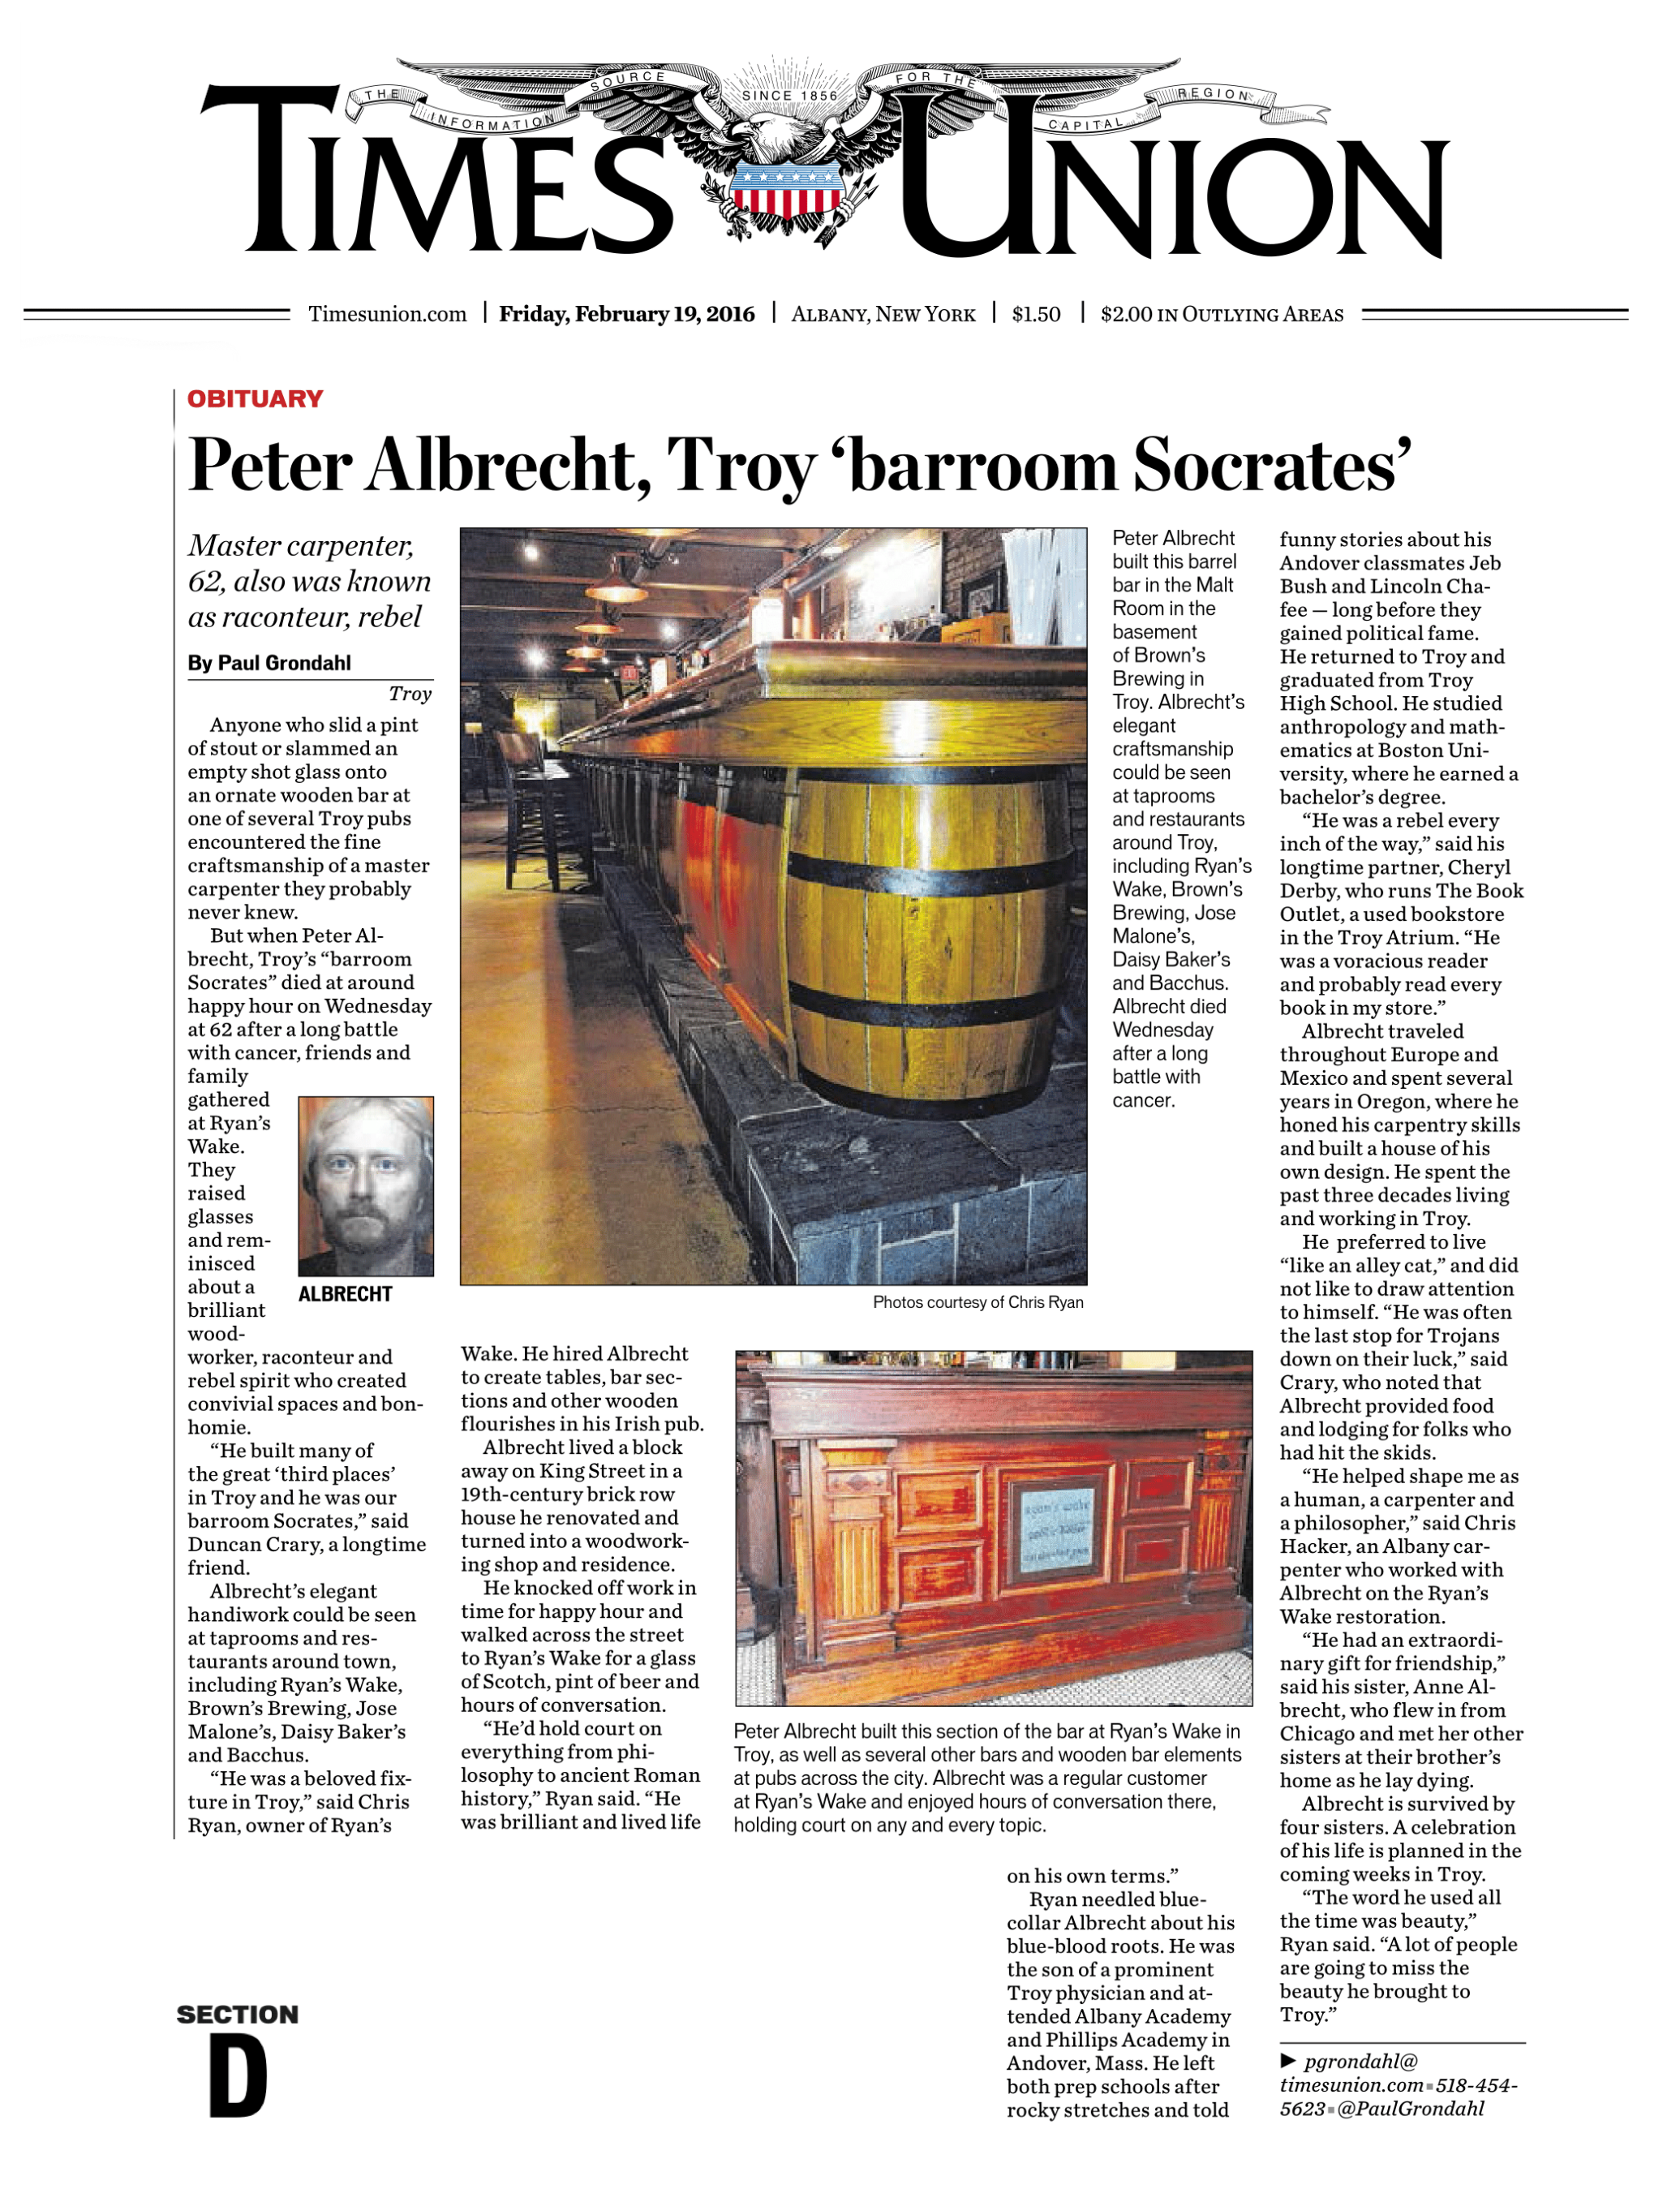 Obituary for Peter Albrecht by Paul Grondahl for The Times Union.